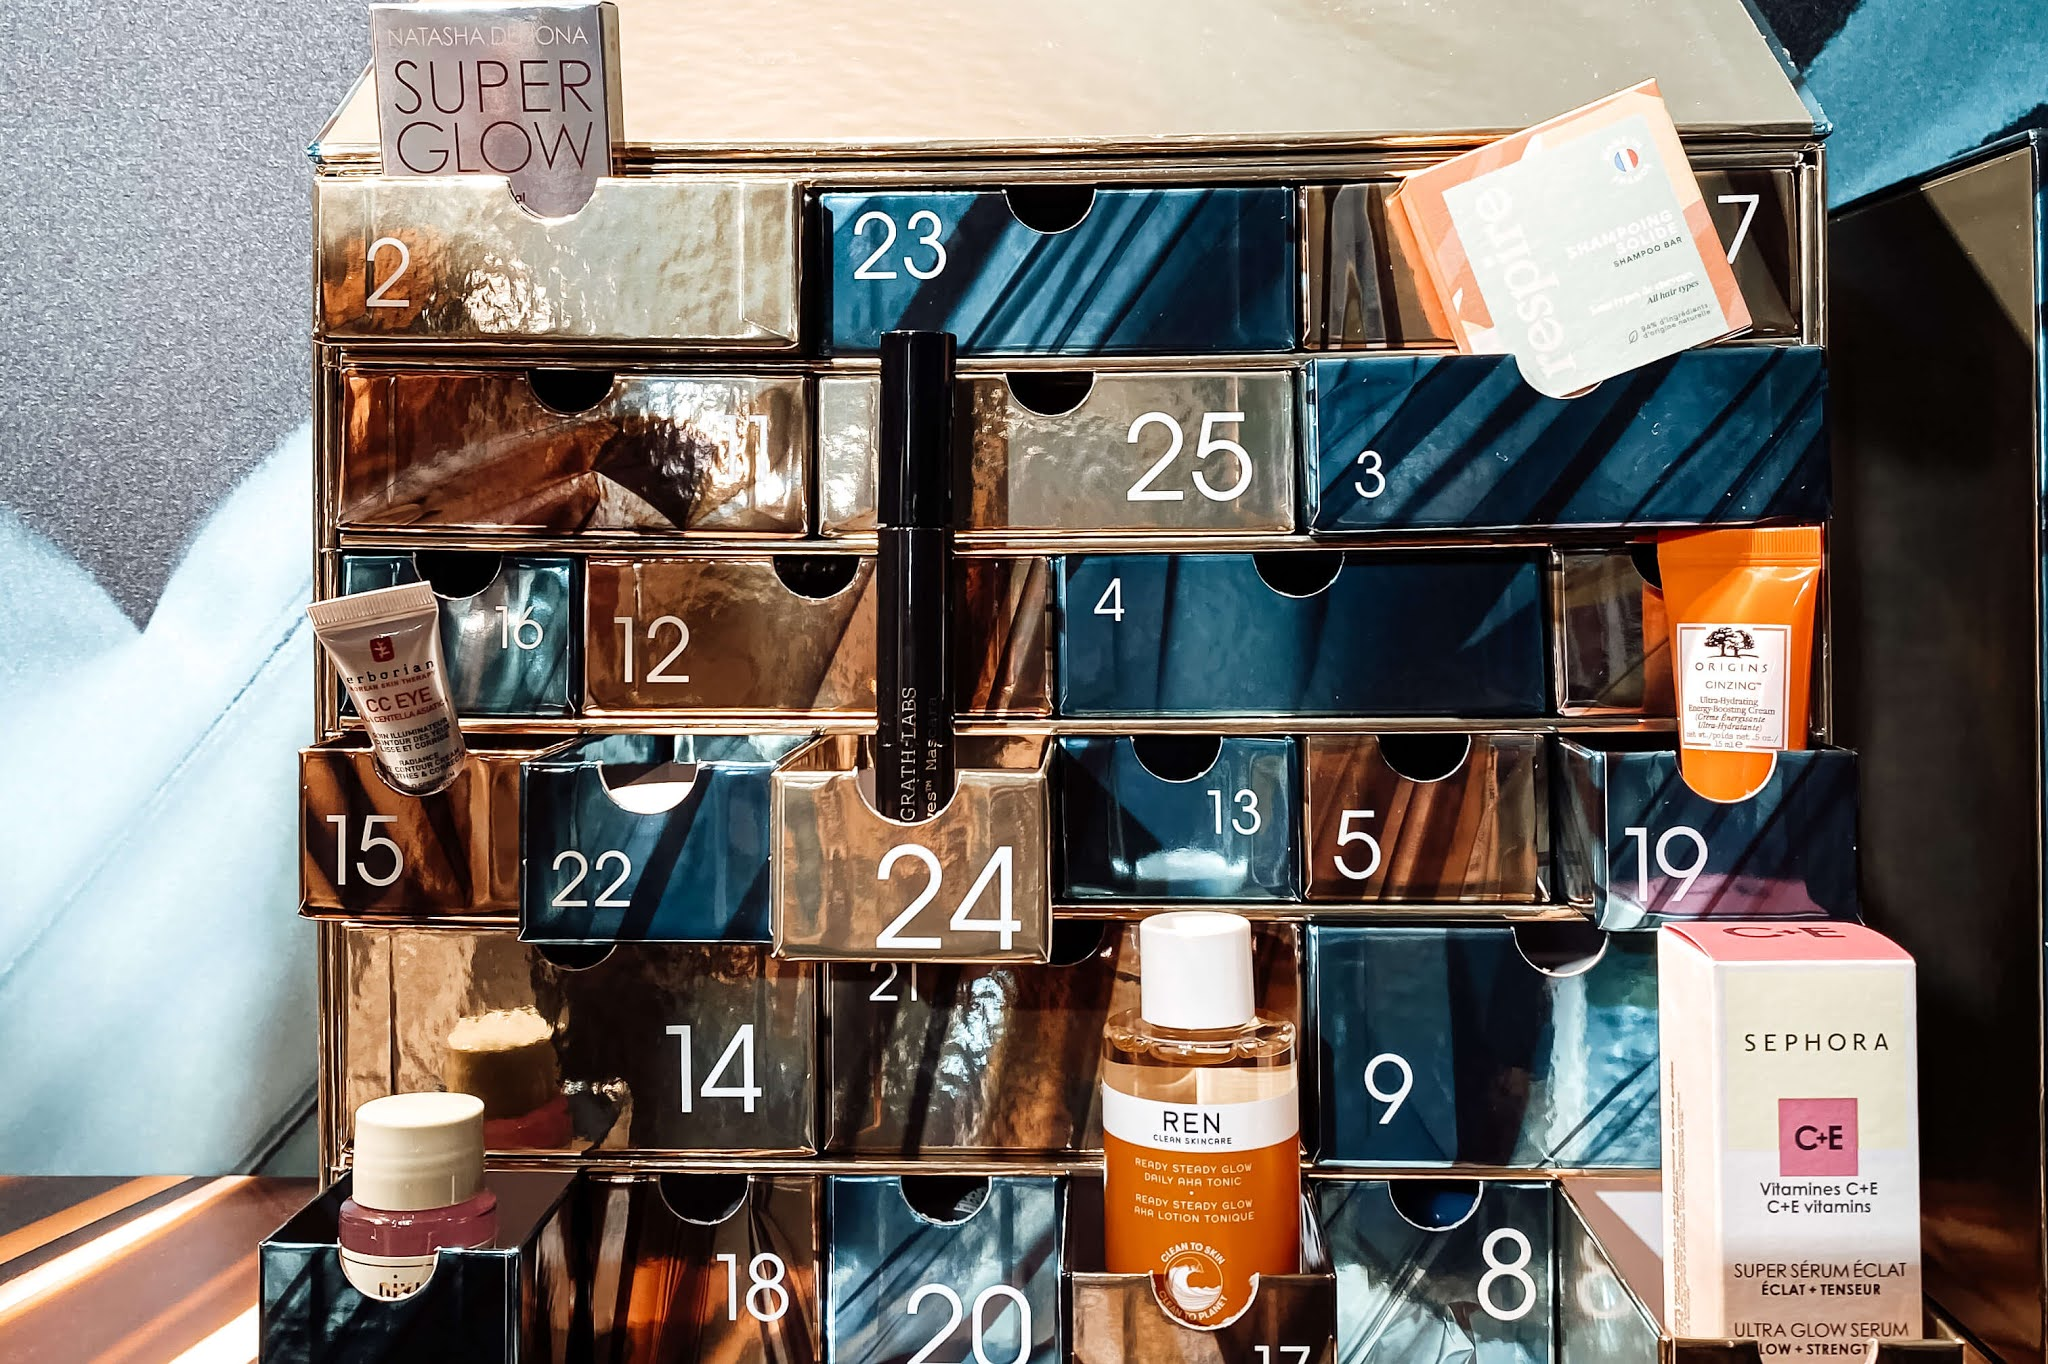 Sephora Favorites Calendrier de l'Avent 2020